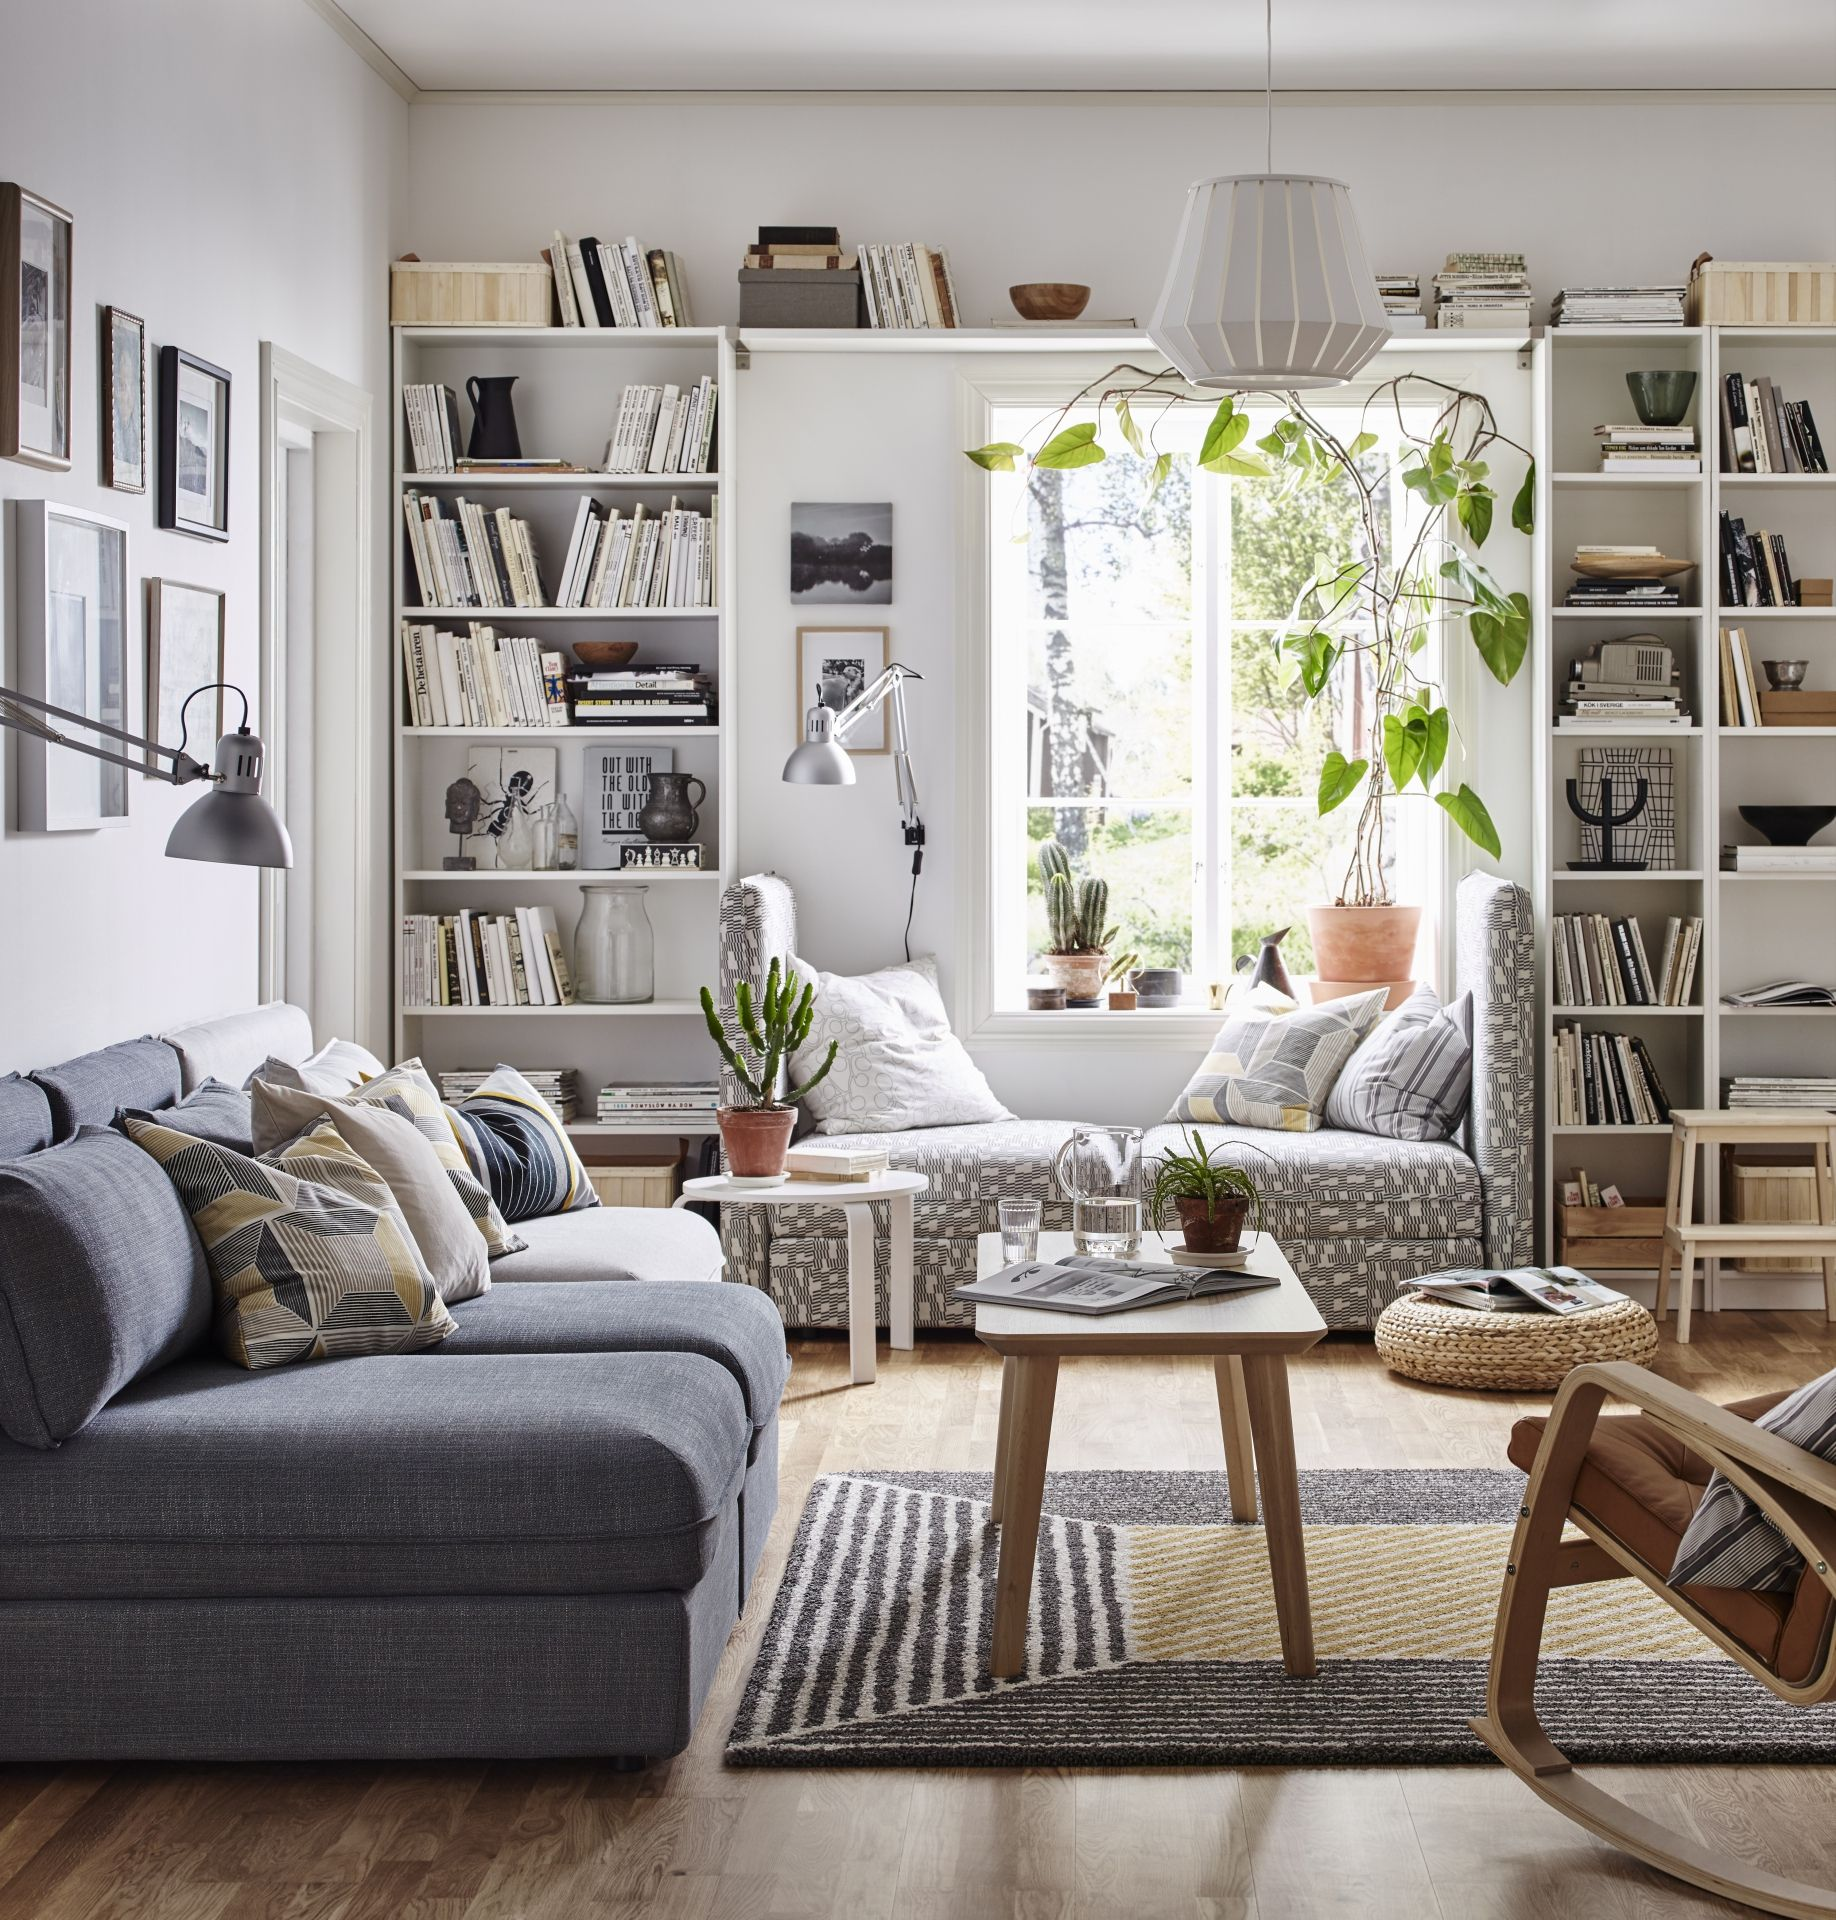 Billy boekenkast ikea ikeanederland inspiratie for Pinterest living room furniture